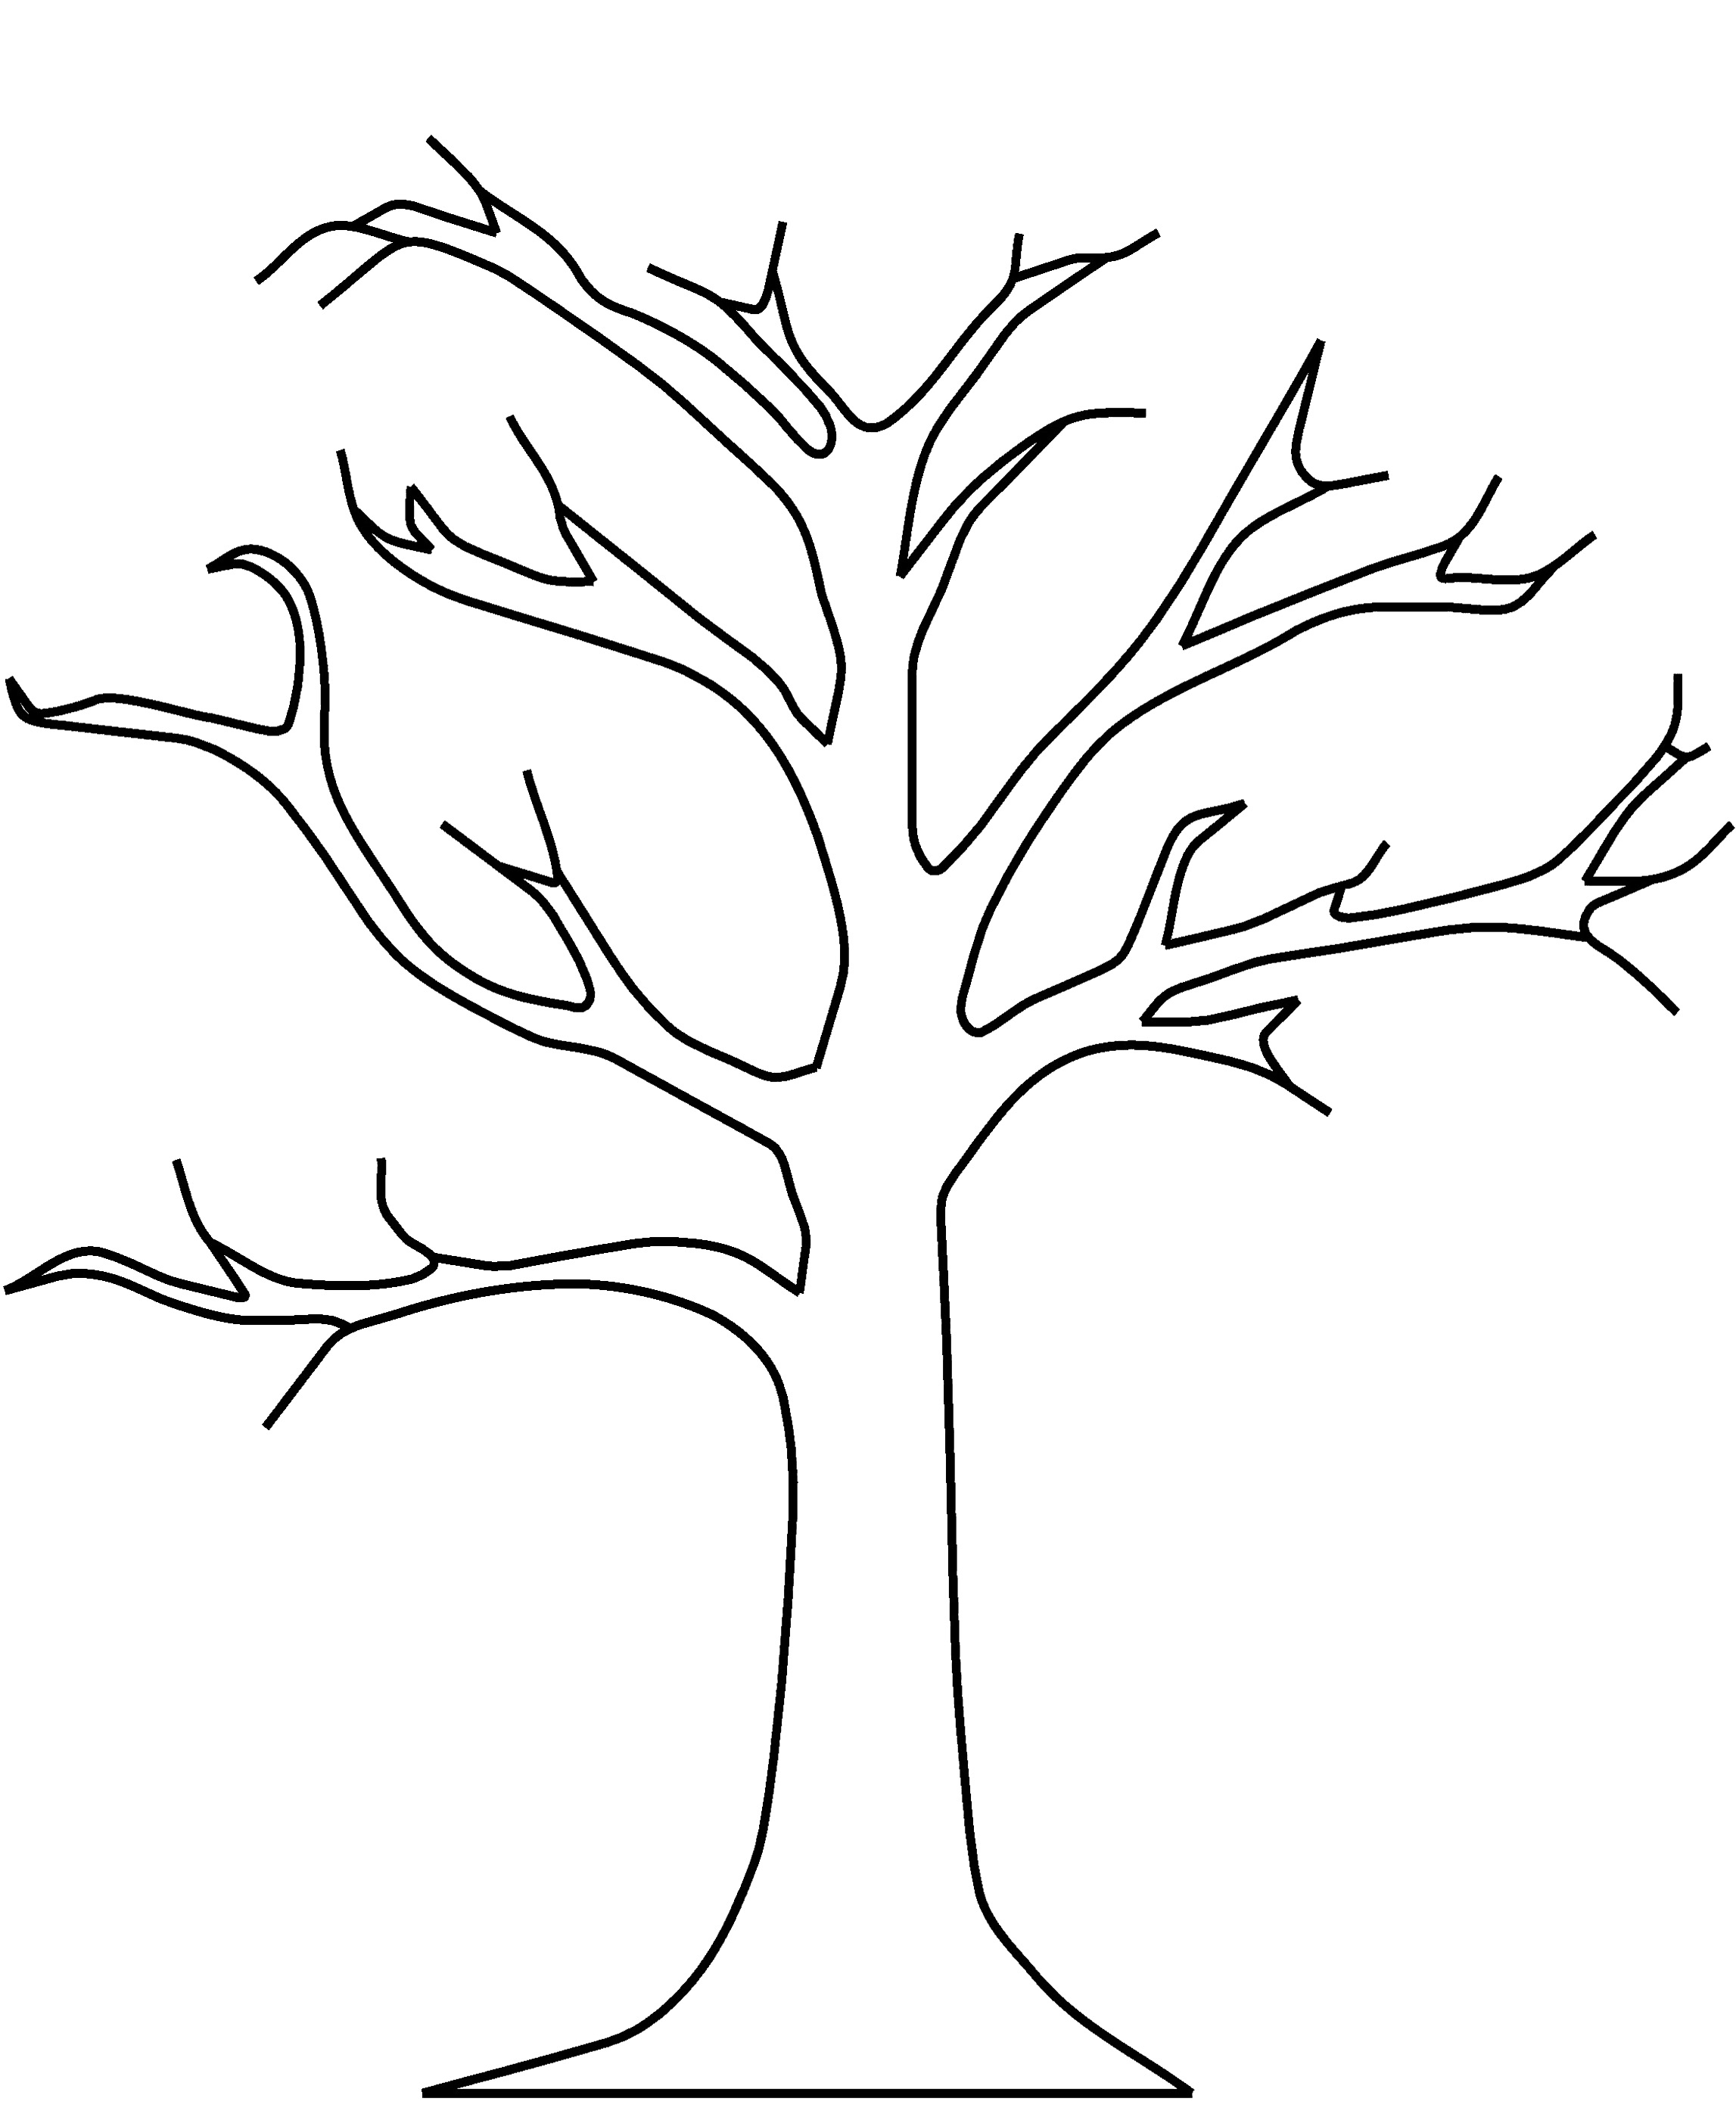 Leaf  black and white tree no leaves clipart black and white collection